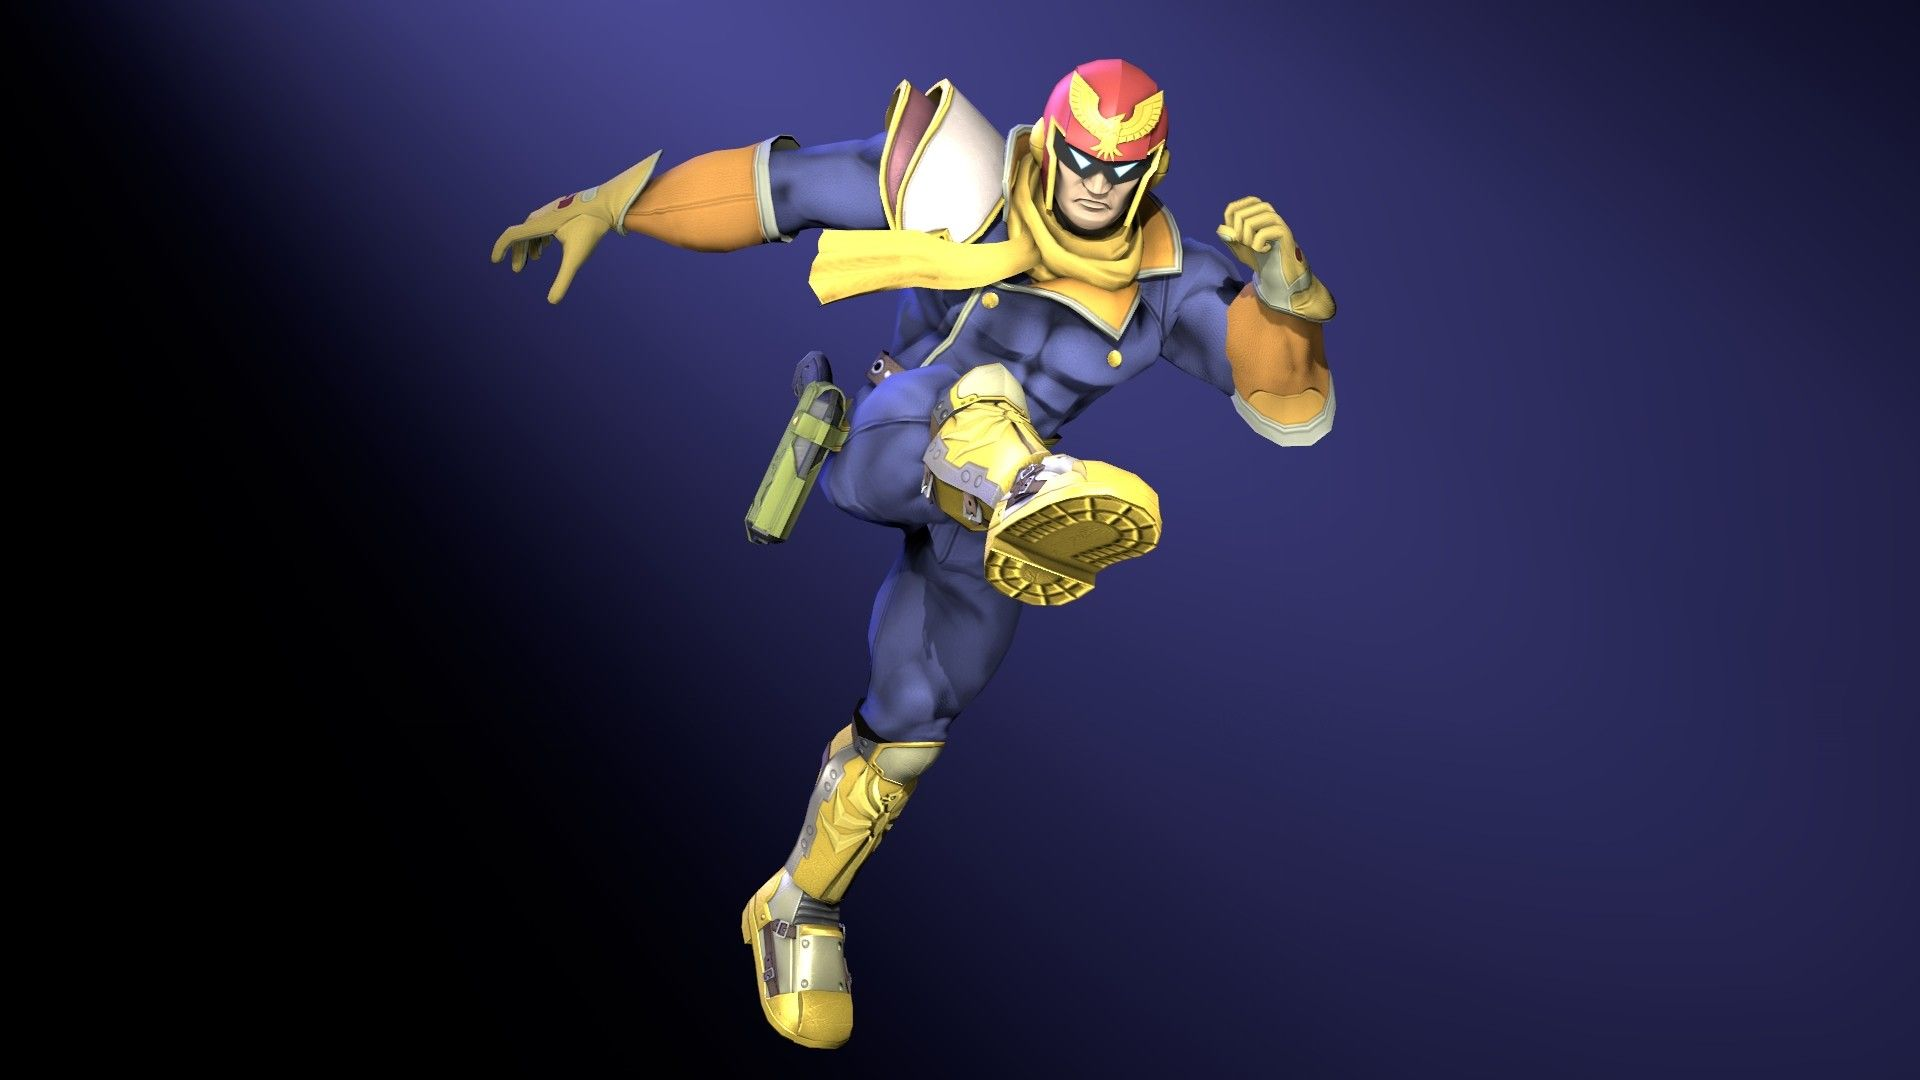 75 Captain Falcon Wallpapers On Wallpaperplay Winter Soldier Wallpaper Captain Avengers Age